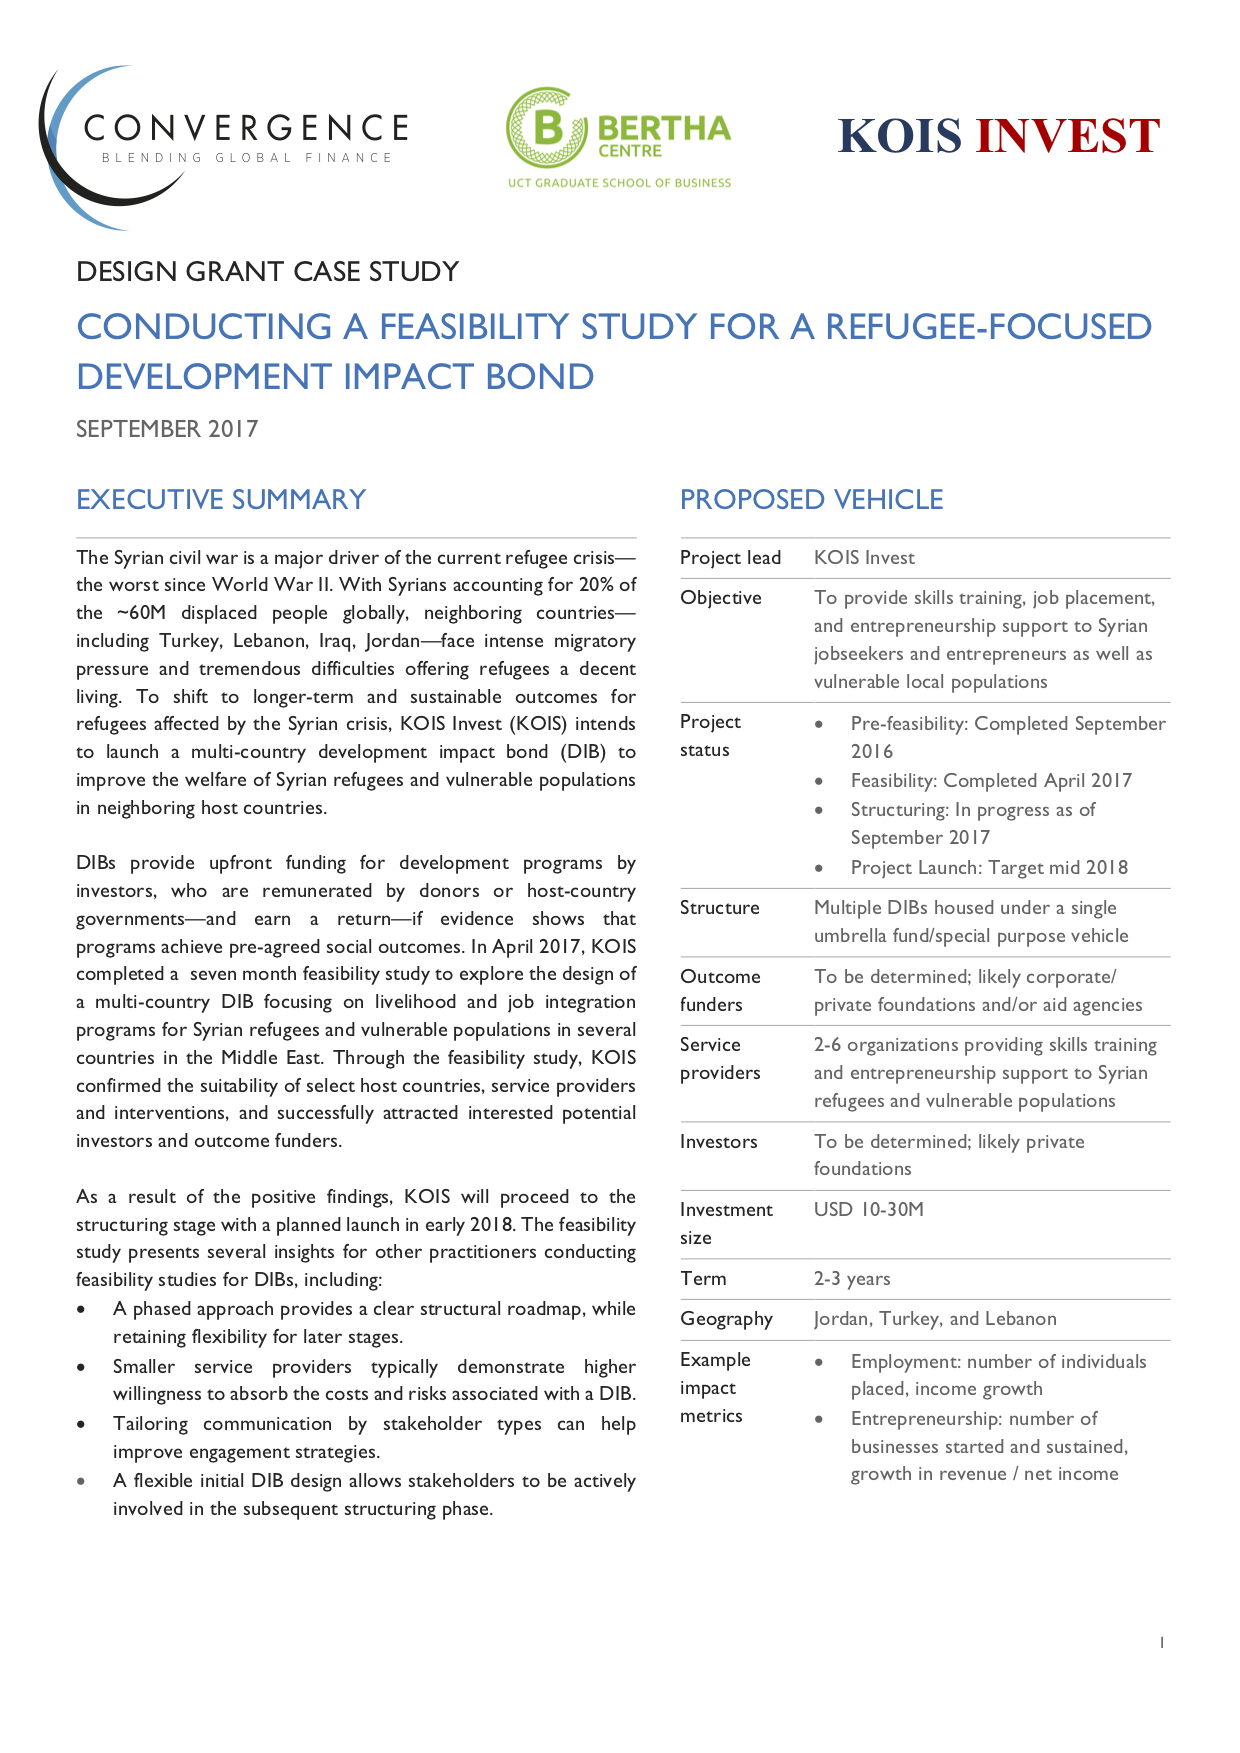 Conducting a Feasibility Study for a Refugee-focused Development Impact Bond - Design Grant Case Study